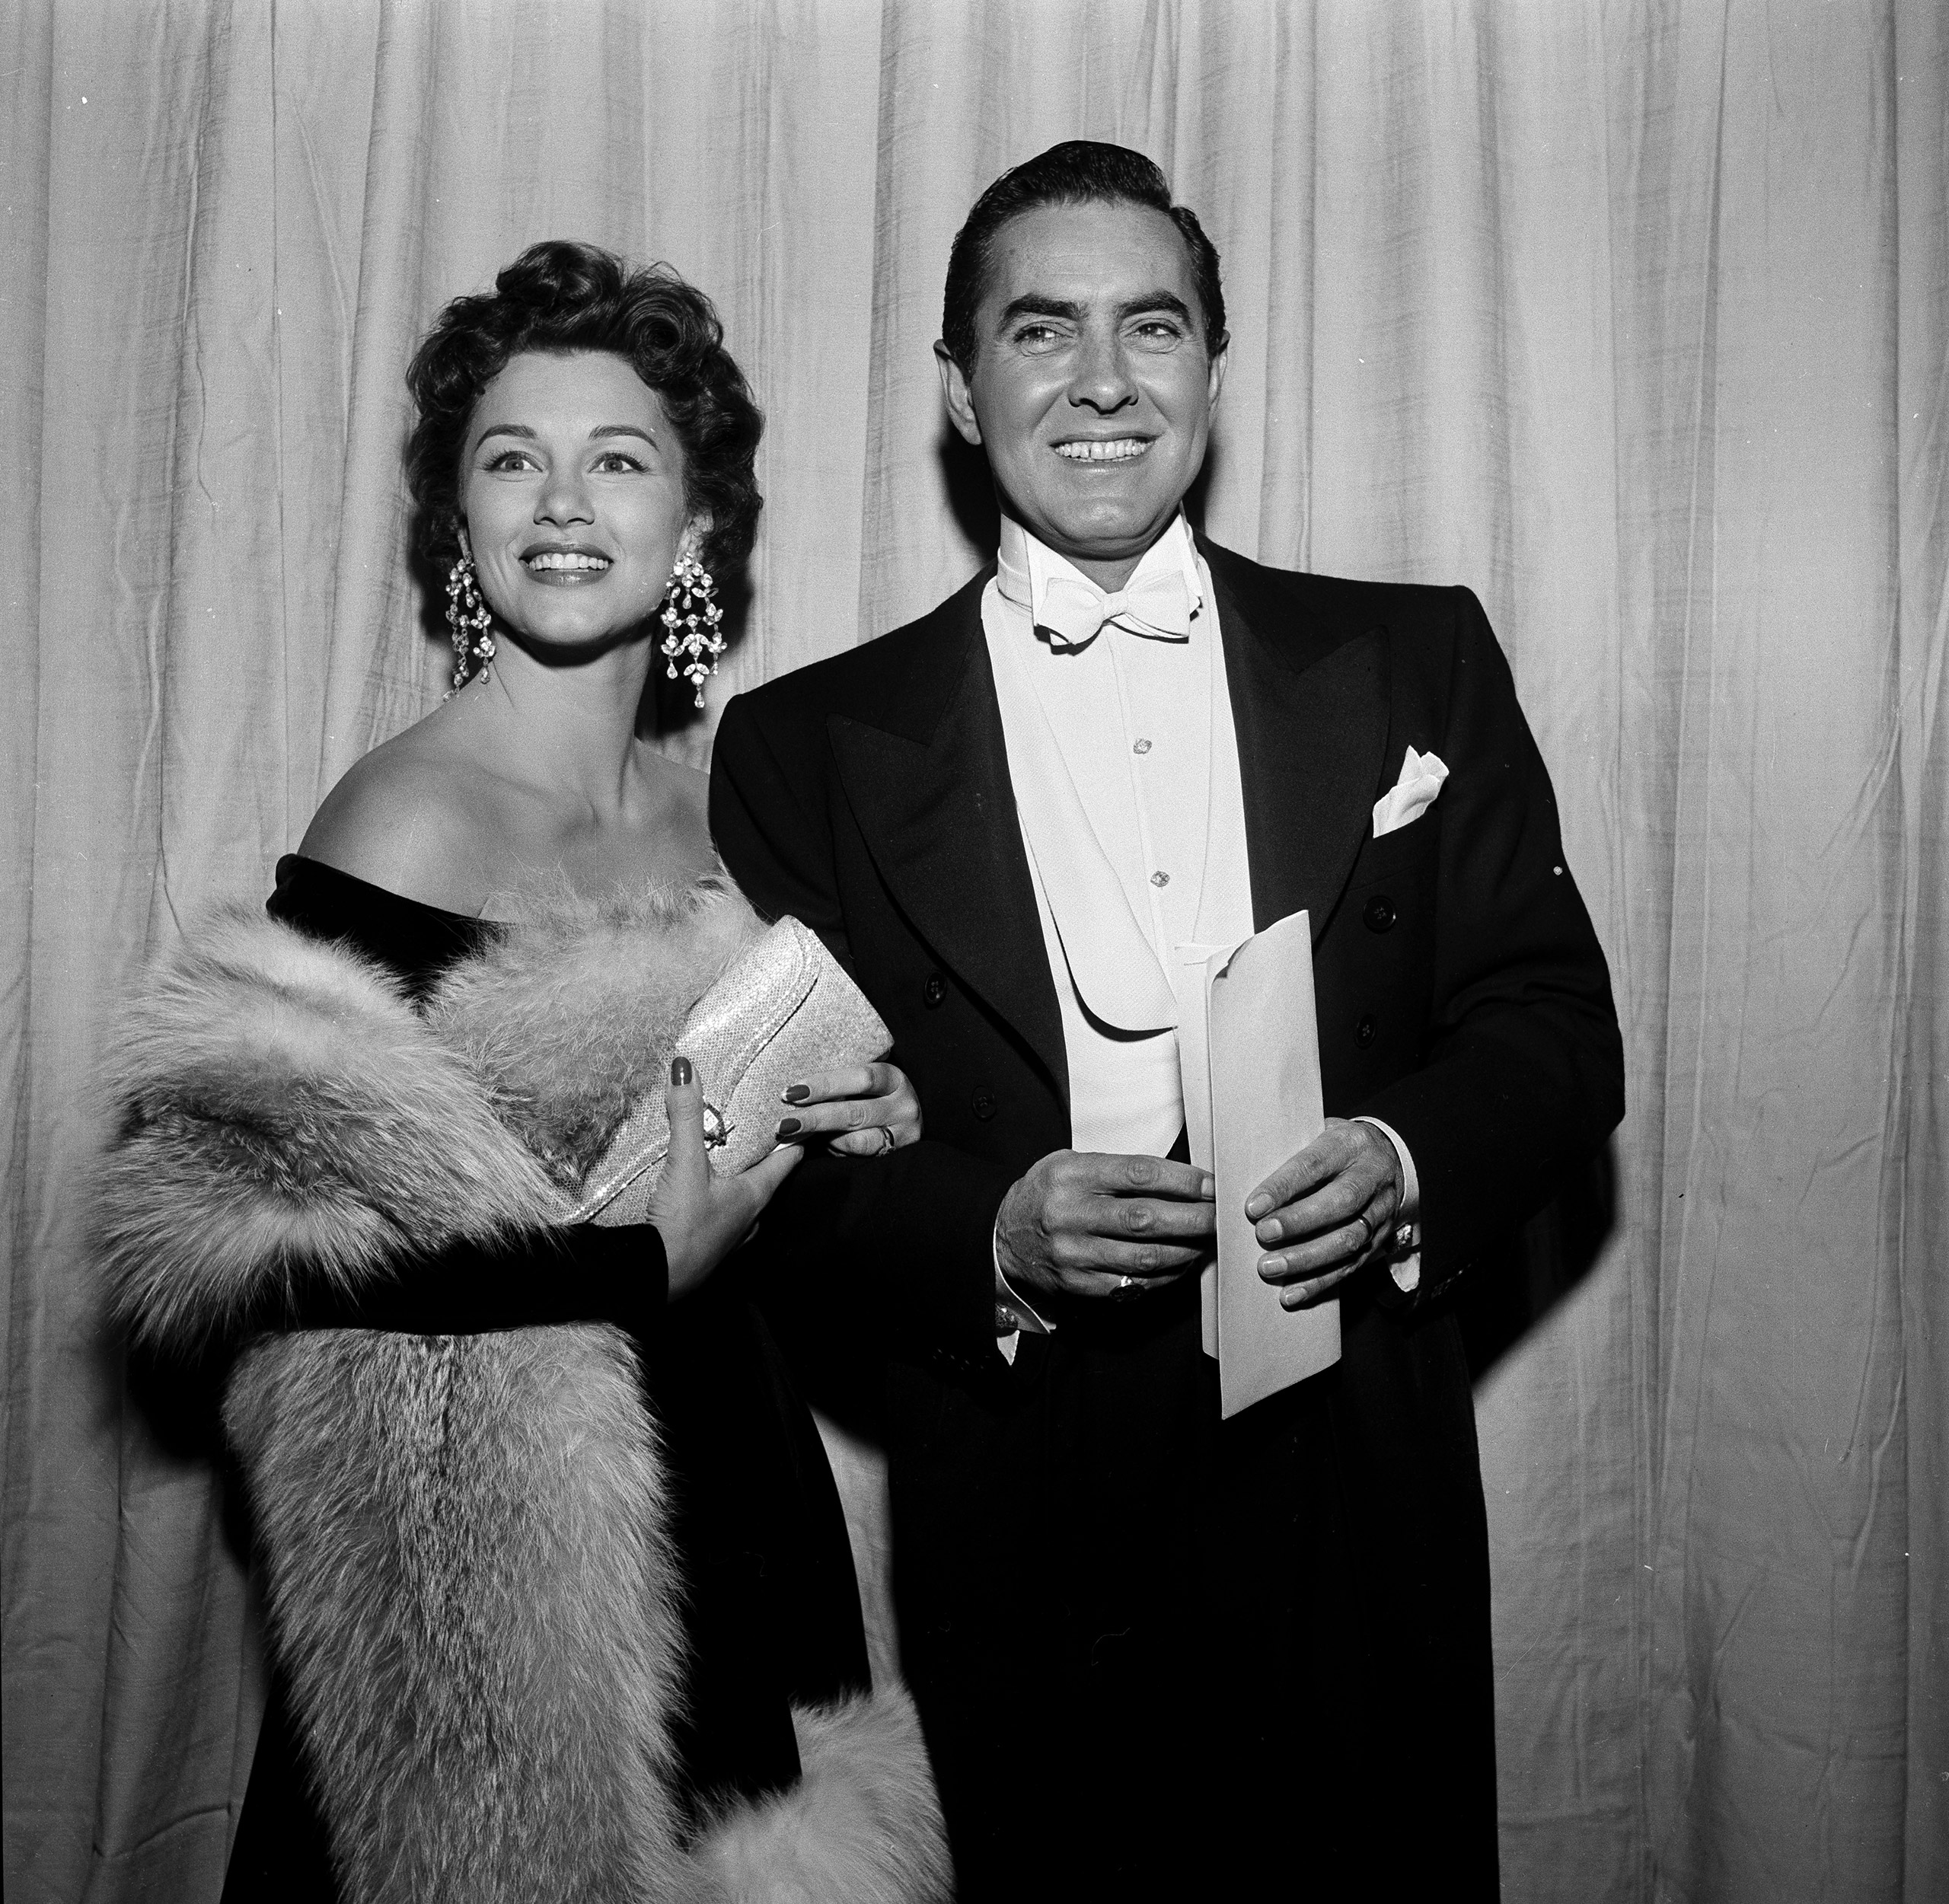 Tyrone Power and his wife Linda Christian at the Academy Awards, 1954.